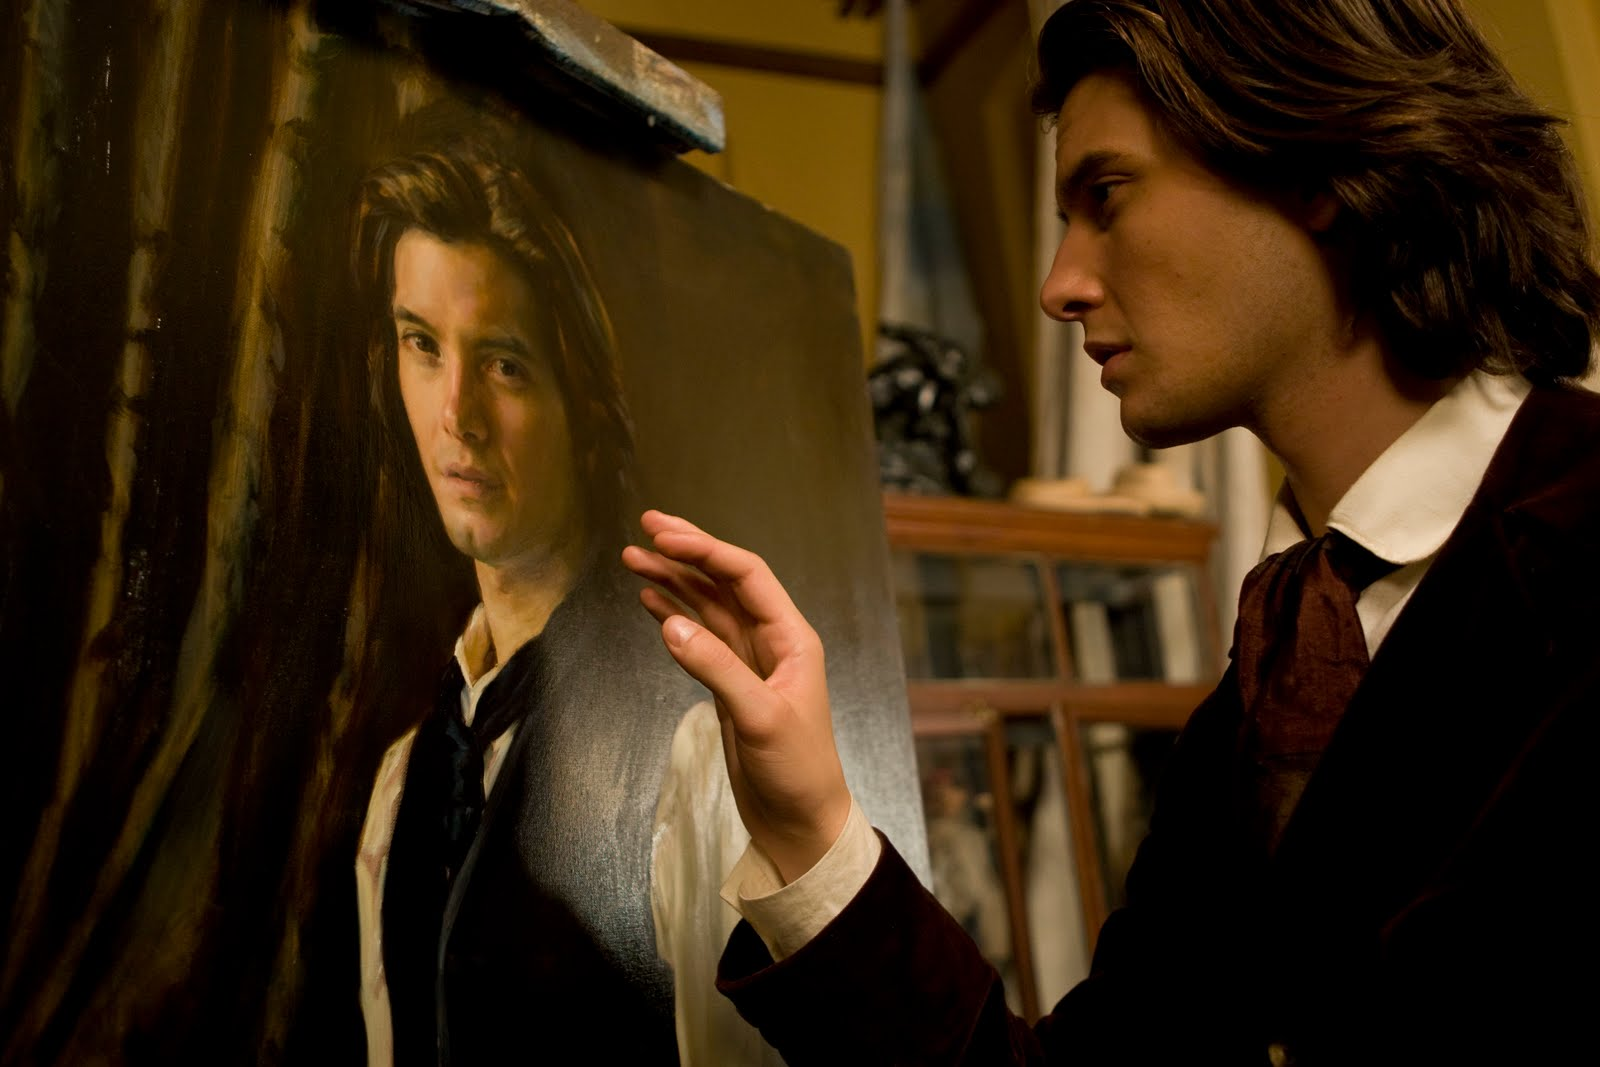 Mesmerized by The Picture of Dorian Gray